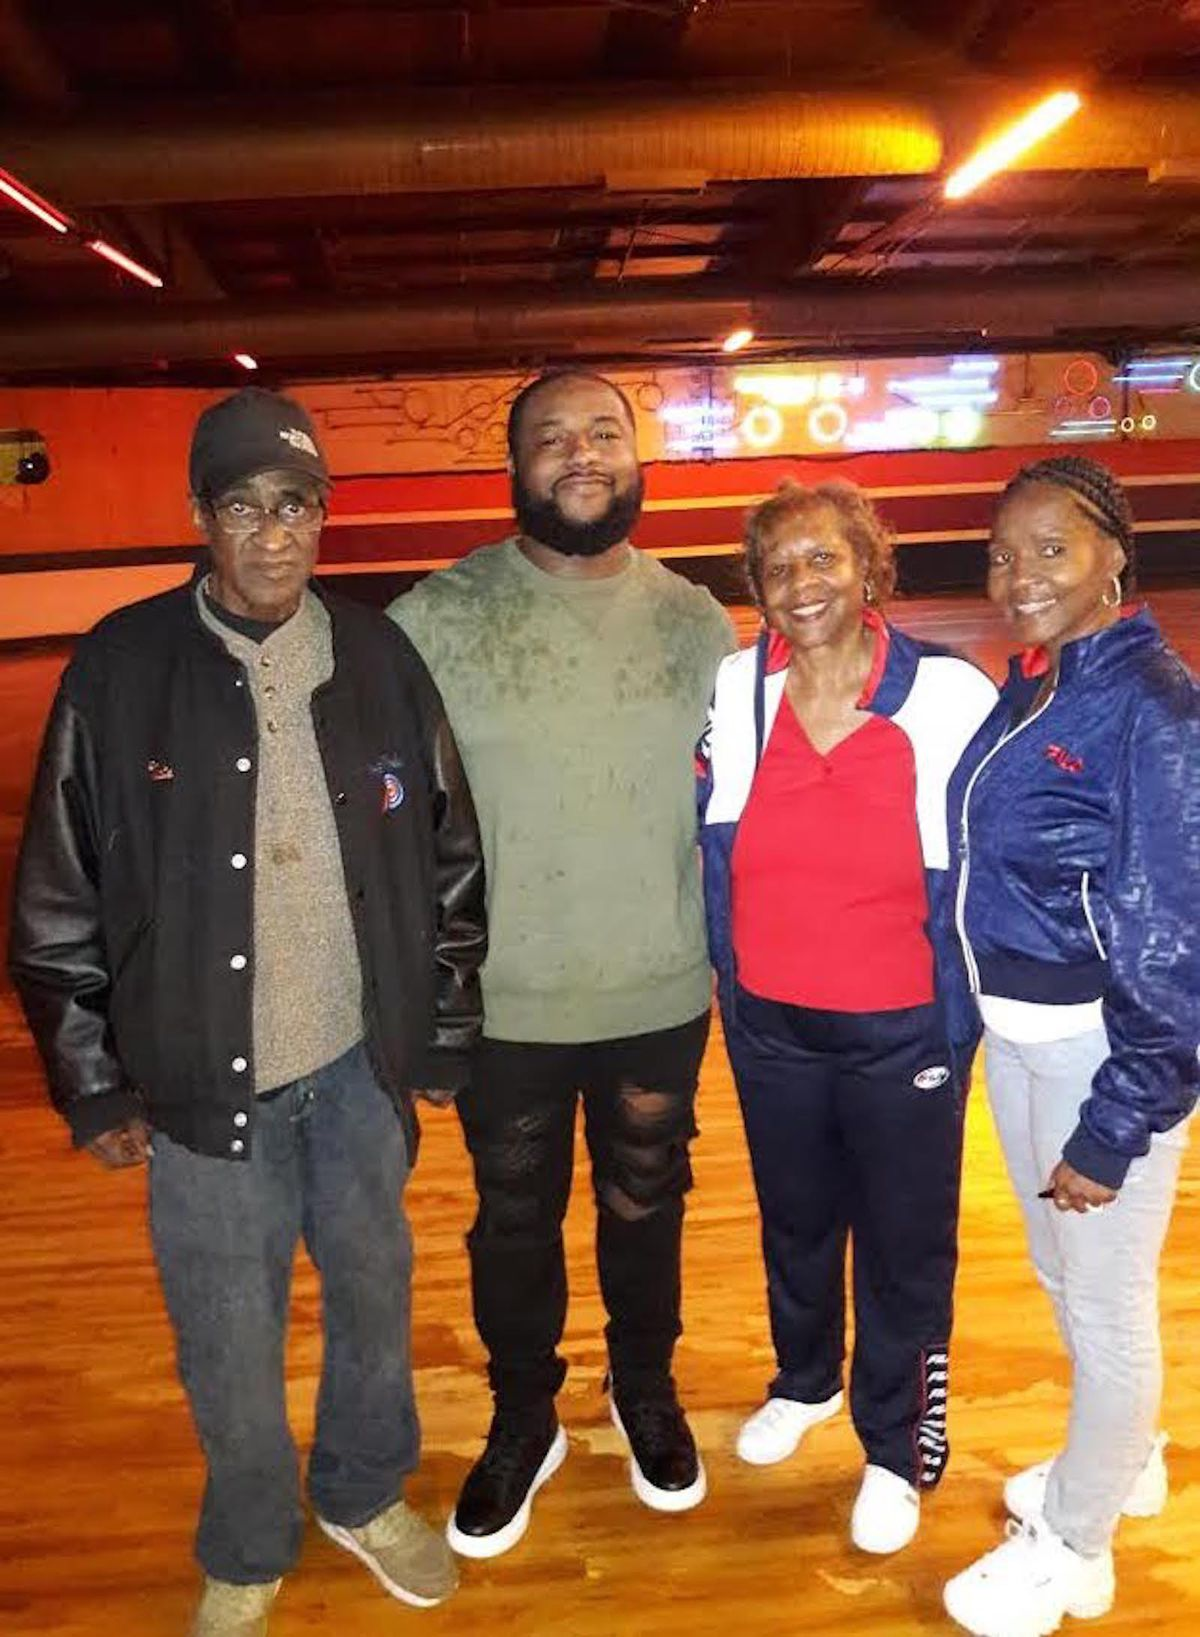 Nate Simpson at The Rink with (from left) his grandson William, business partner and ex-wife Carmen Simpson Clark and daughter Valencia.